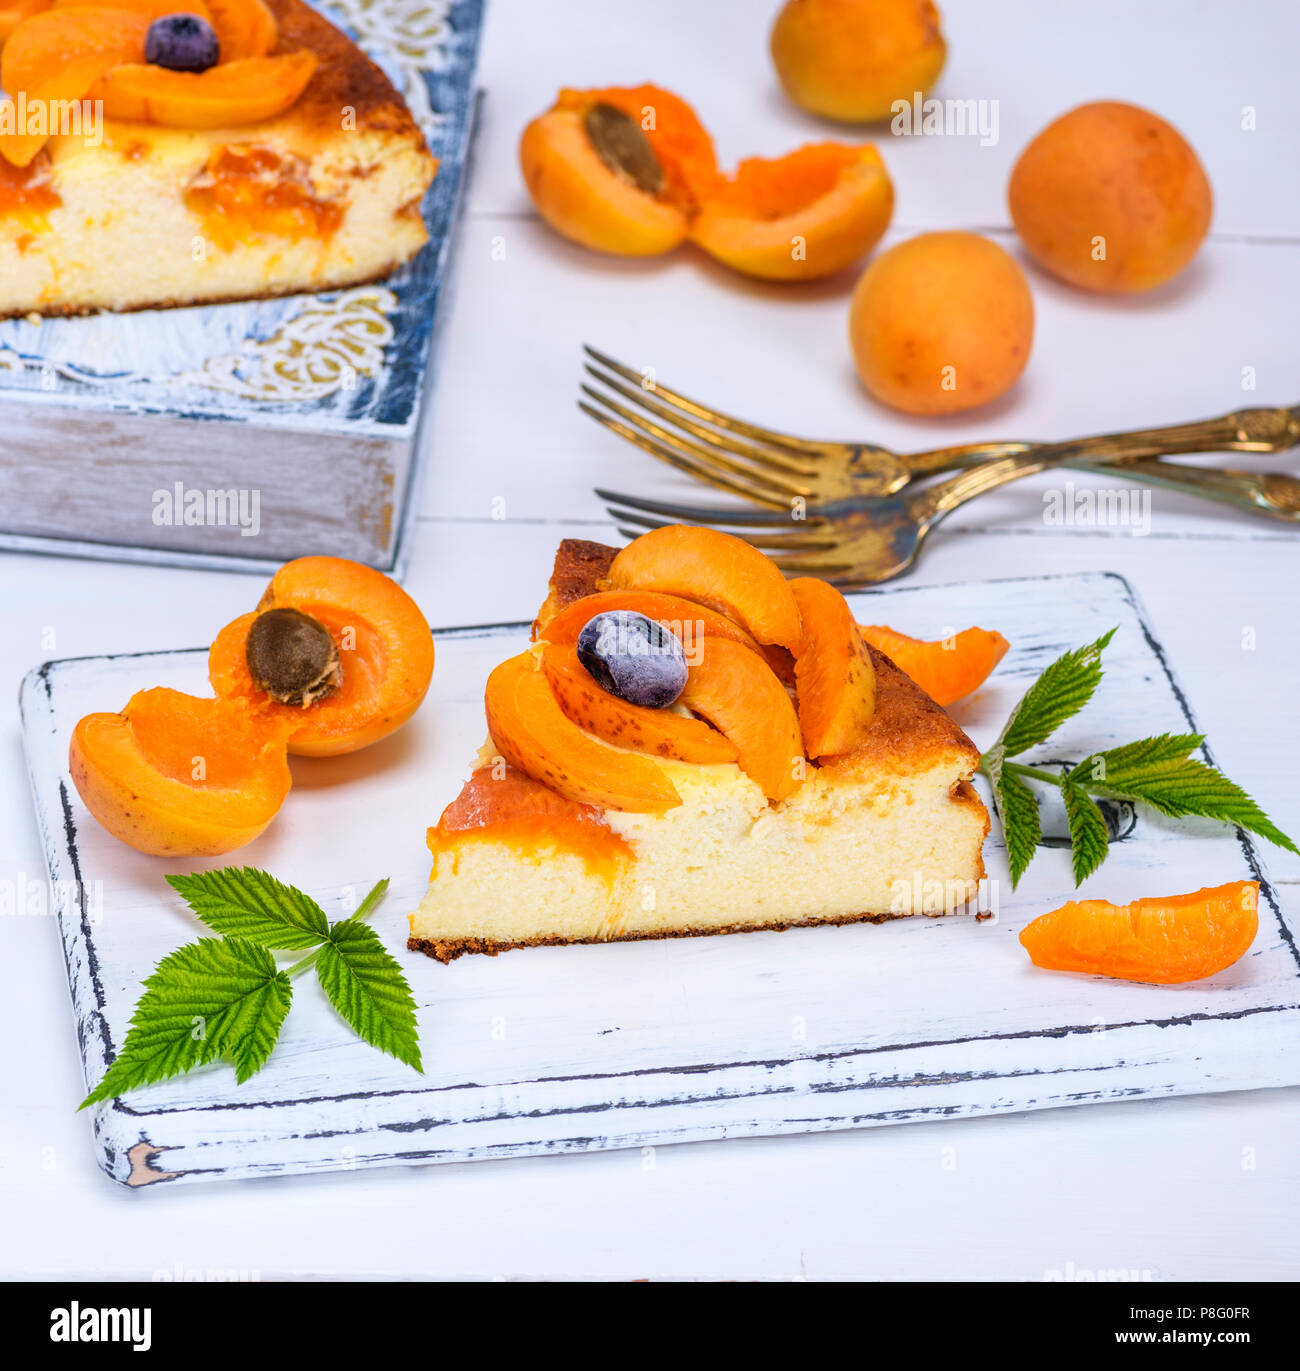 Cake with apricots and cottage cheese: recipe